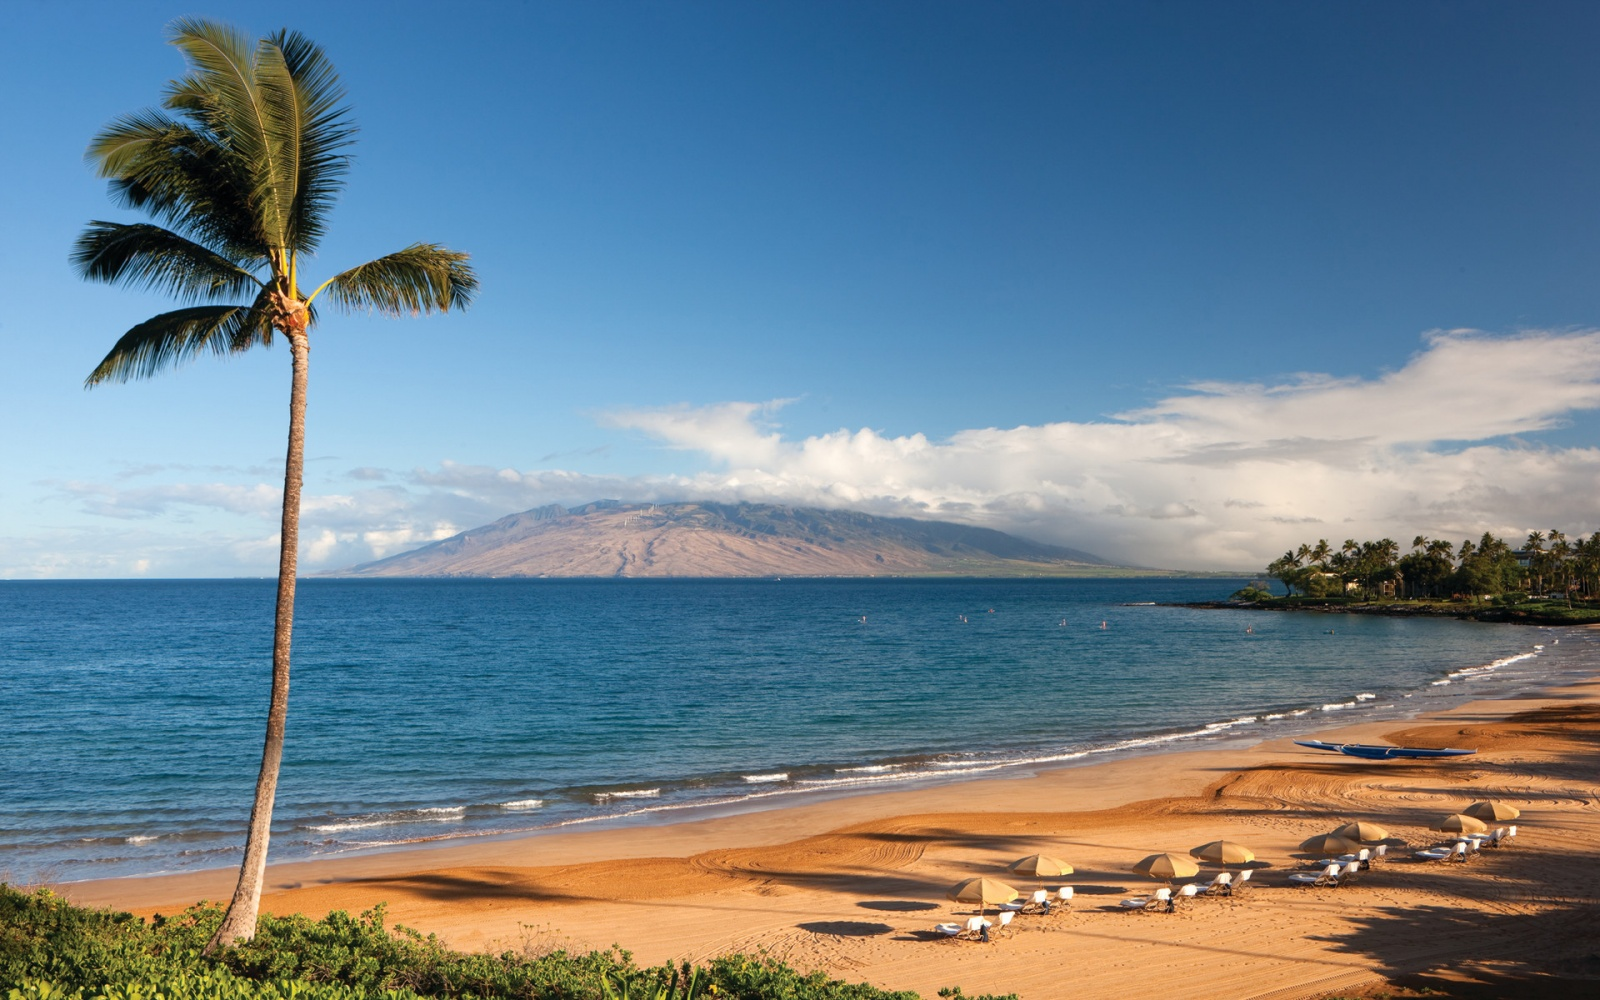 Wailea, and the smaller Makena to the south, are resort areas on the south side of Maui, Hawaii, immediately south of the town of Kihei. They are known for their luxury resort hotels and condos, upscale restaurants, fancy shopping center and expensive golf courses.